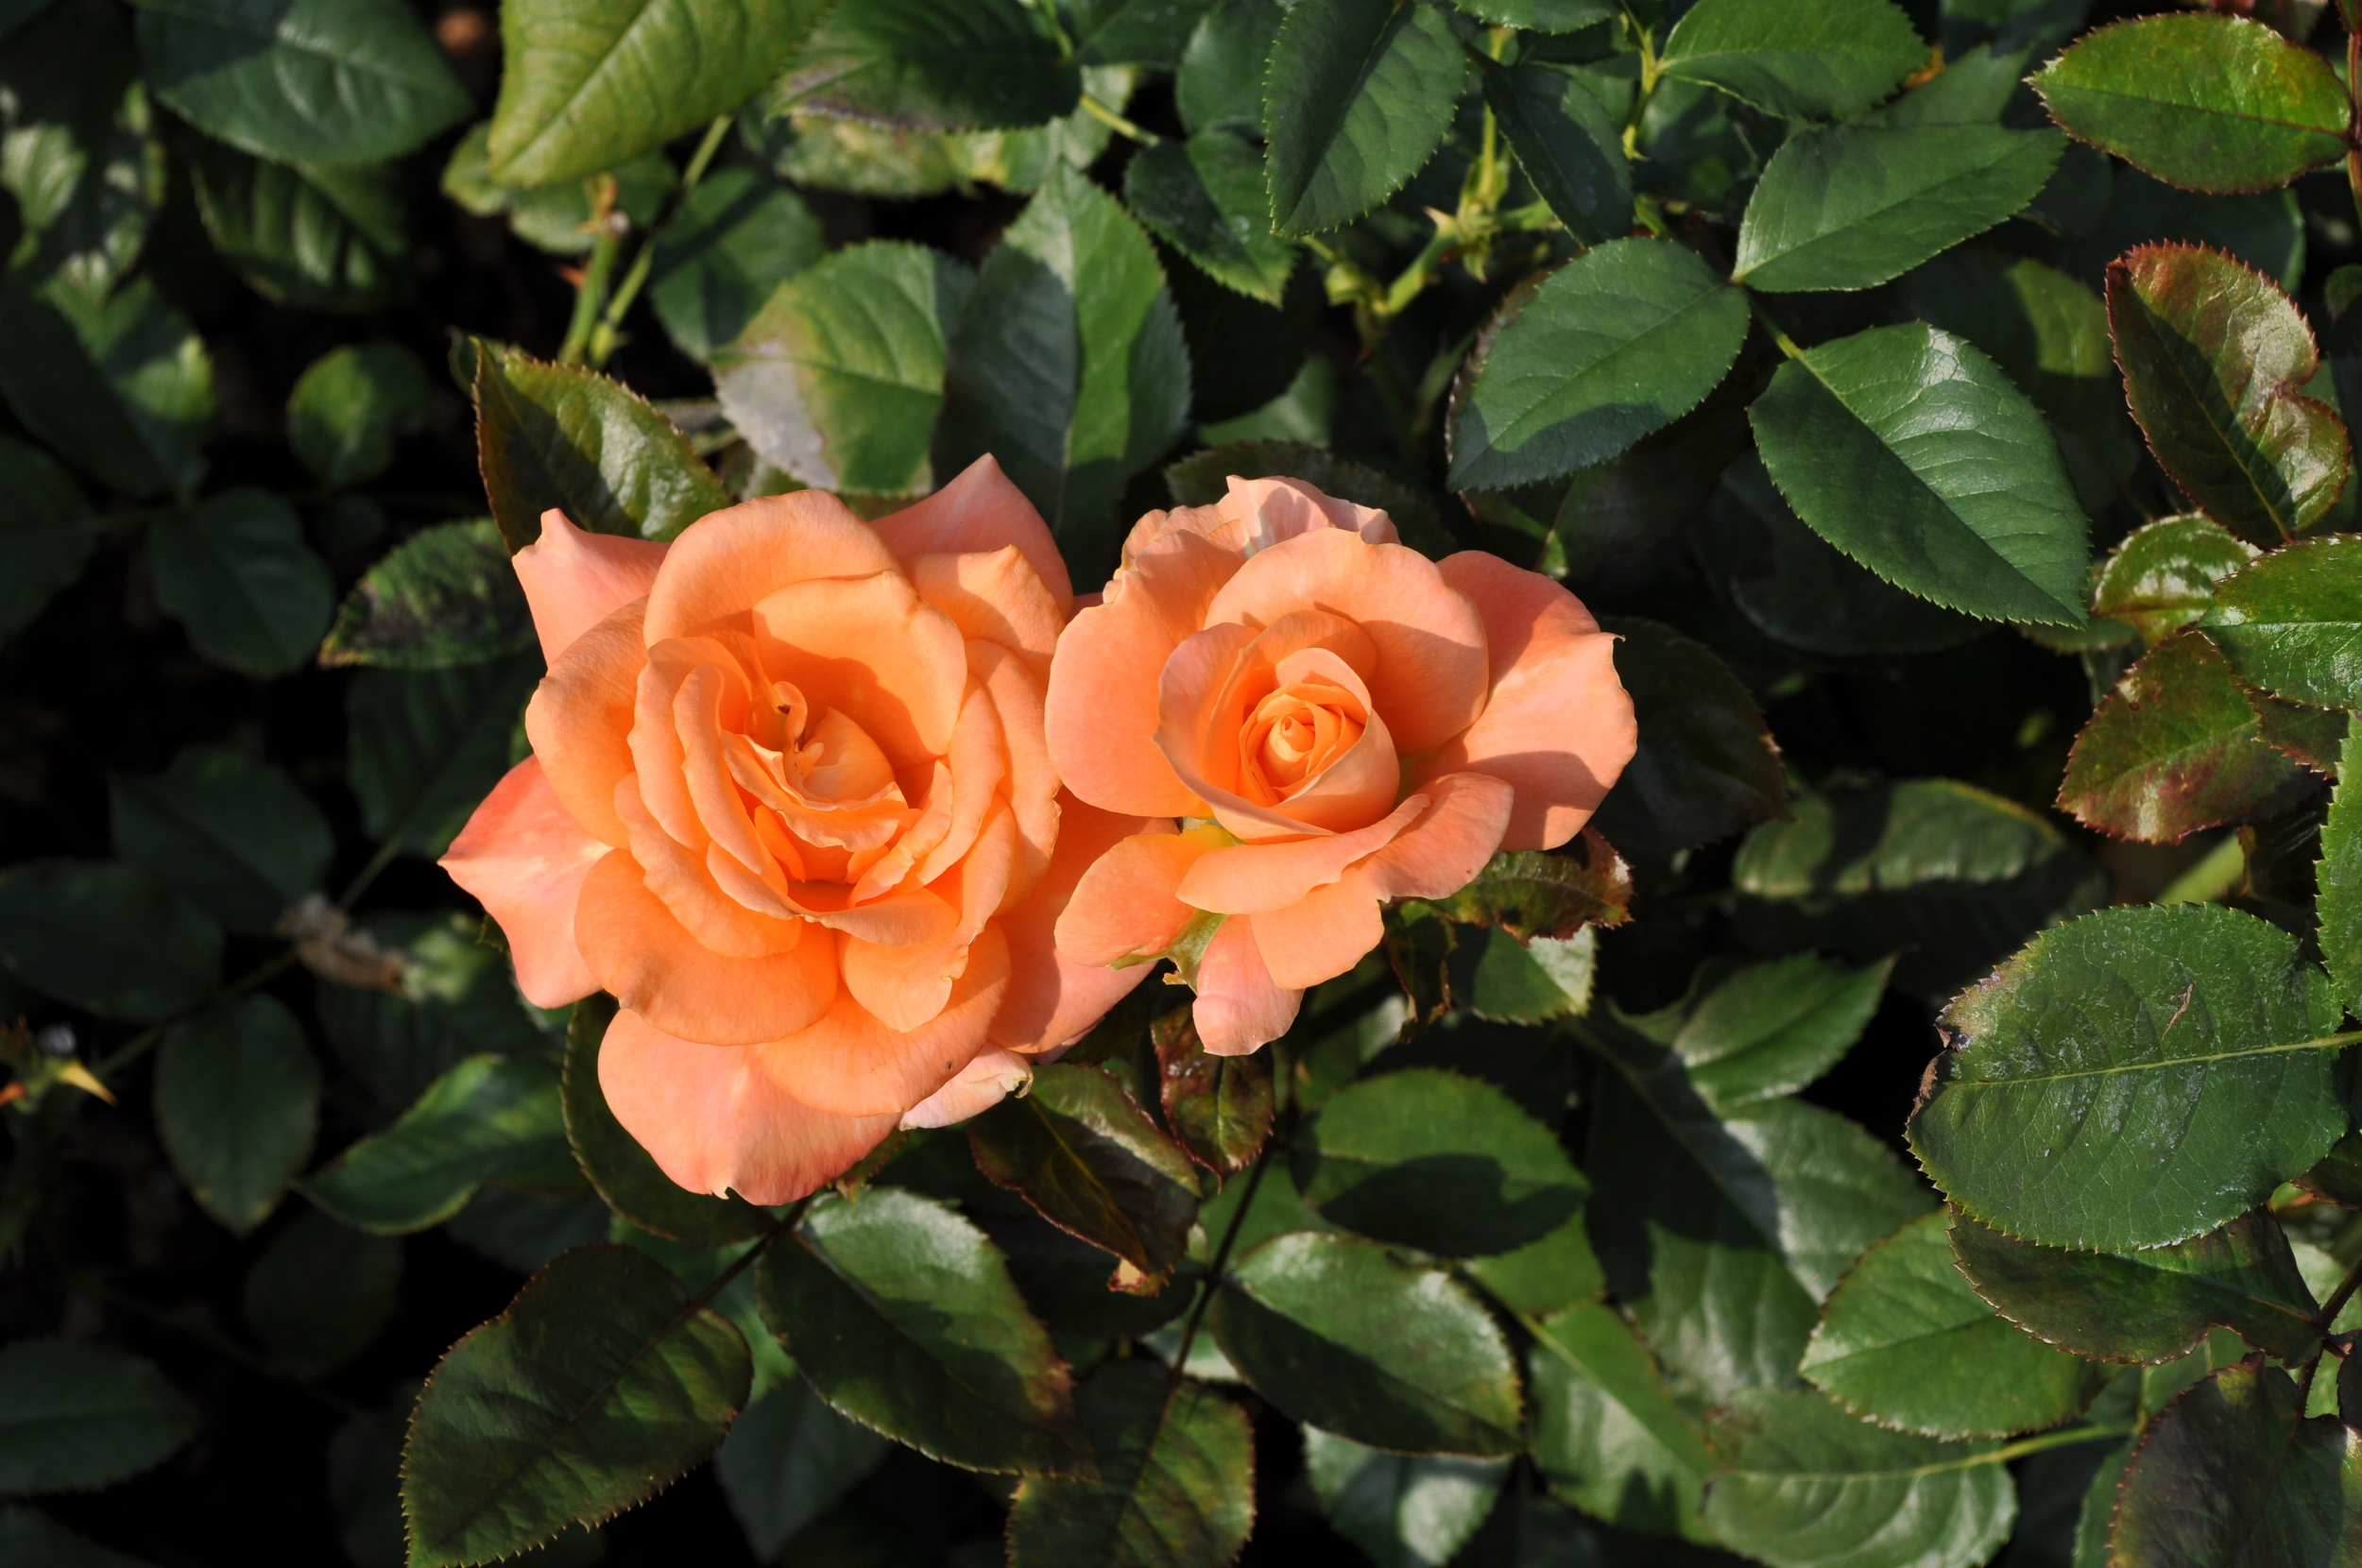 The Rose Garden has more than two hundred varieties of roses, among other flowers and bushes. Photo: Pamy Rojas